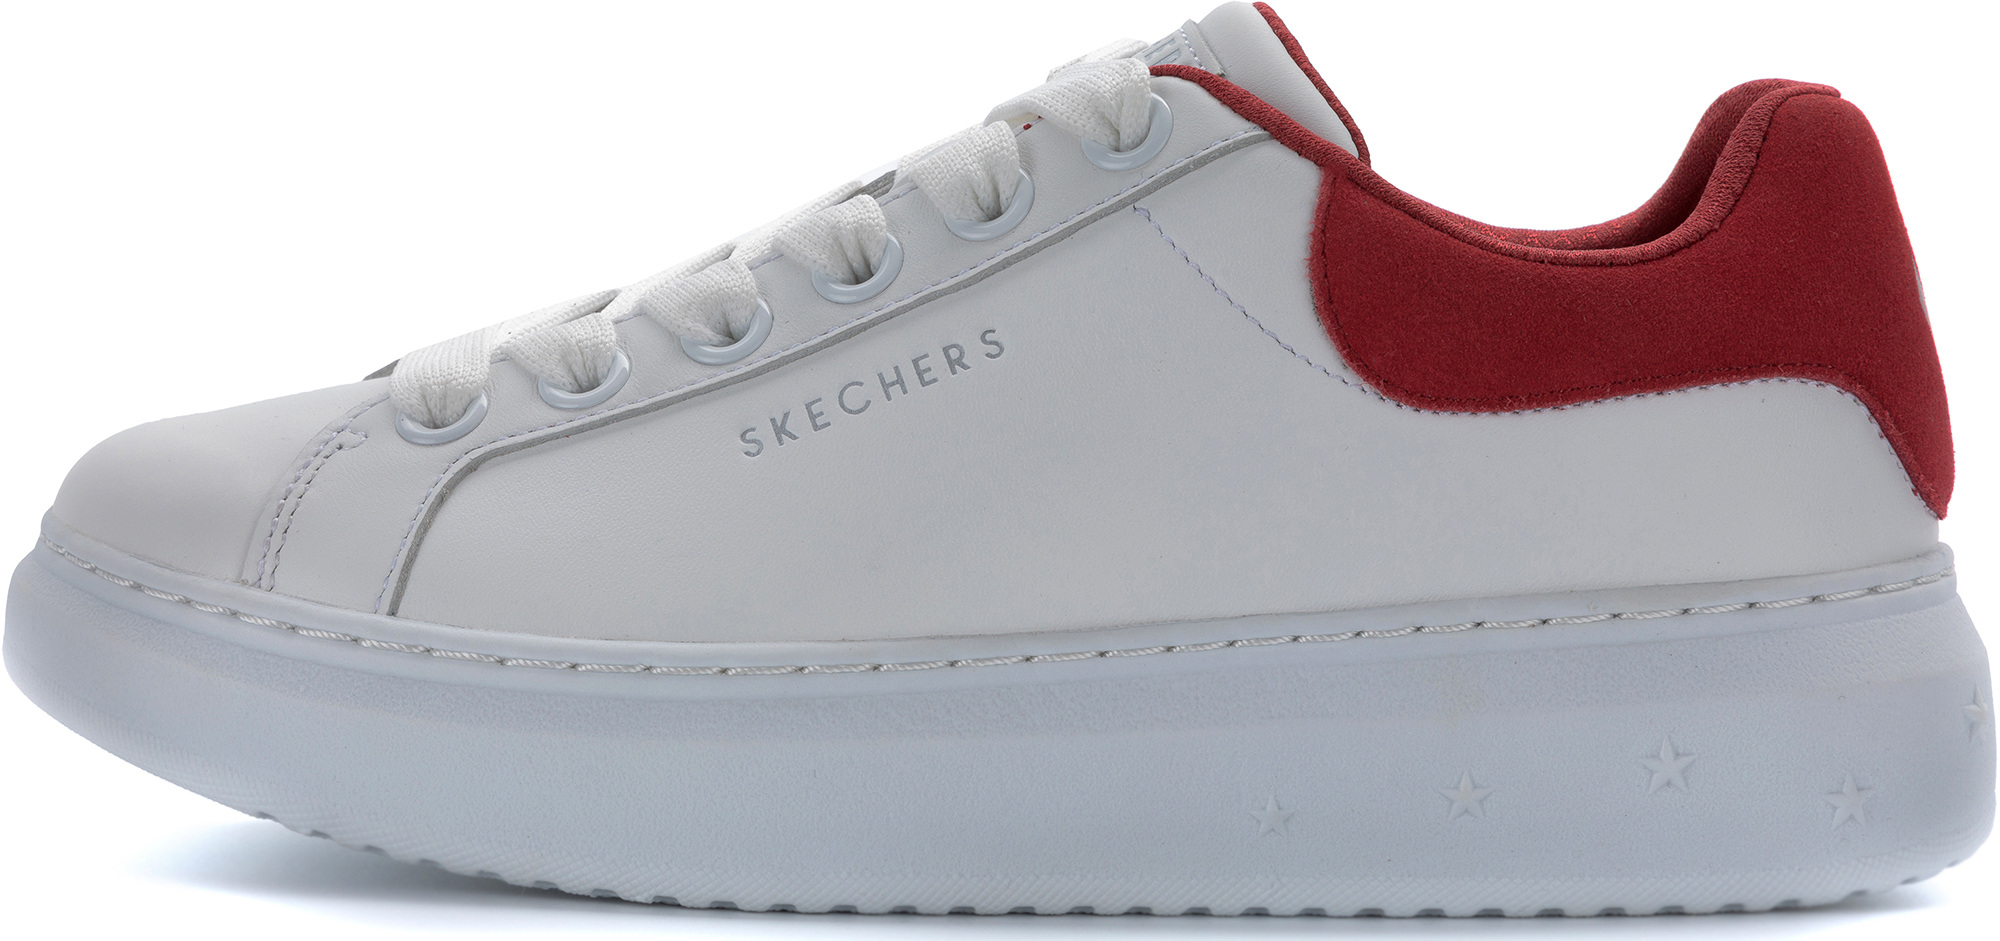 цена Skechers Кеды женские Skechers High Street Extremely-Sole-Fu, размер 42